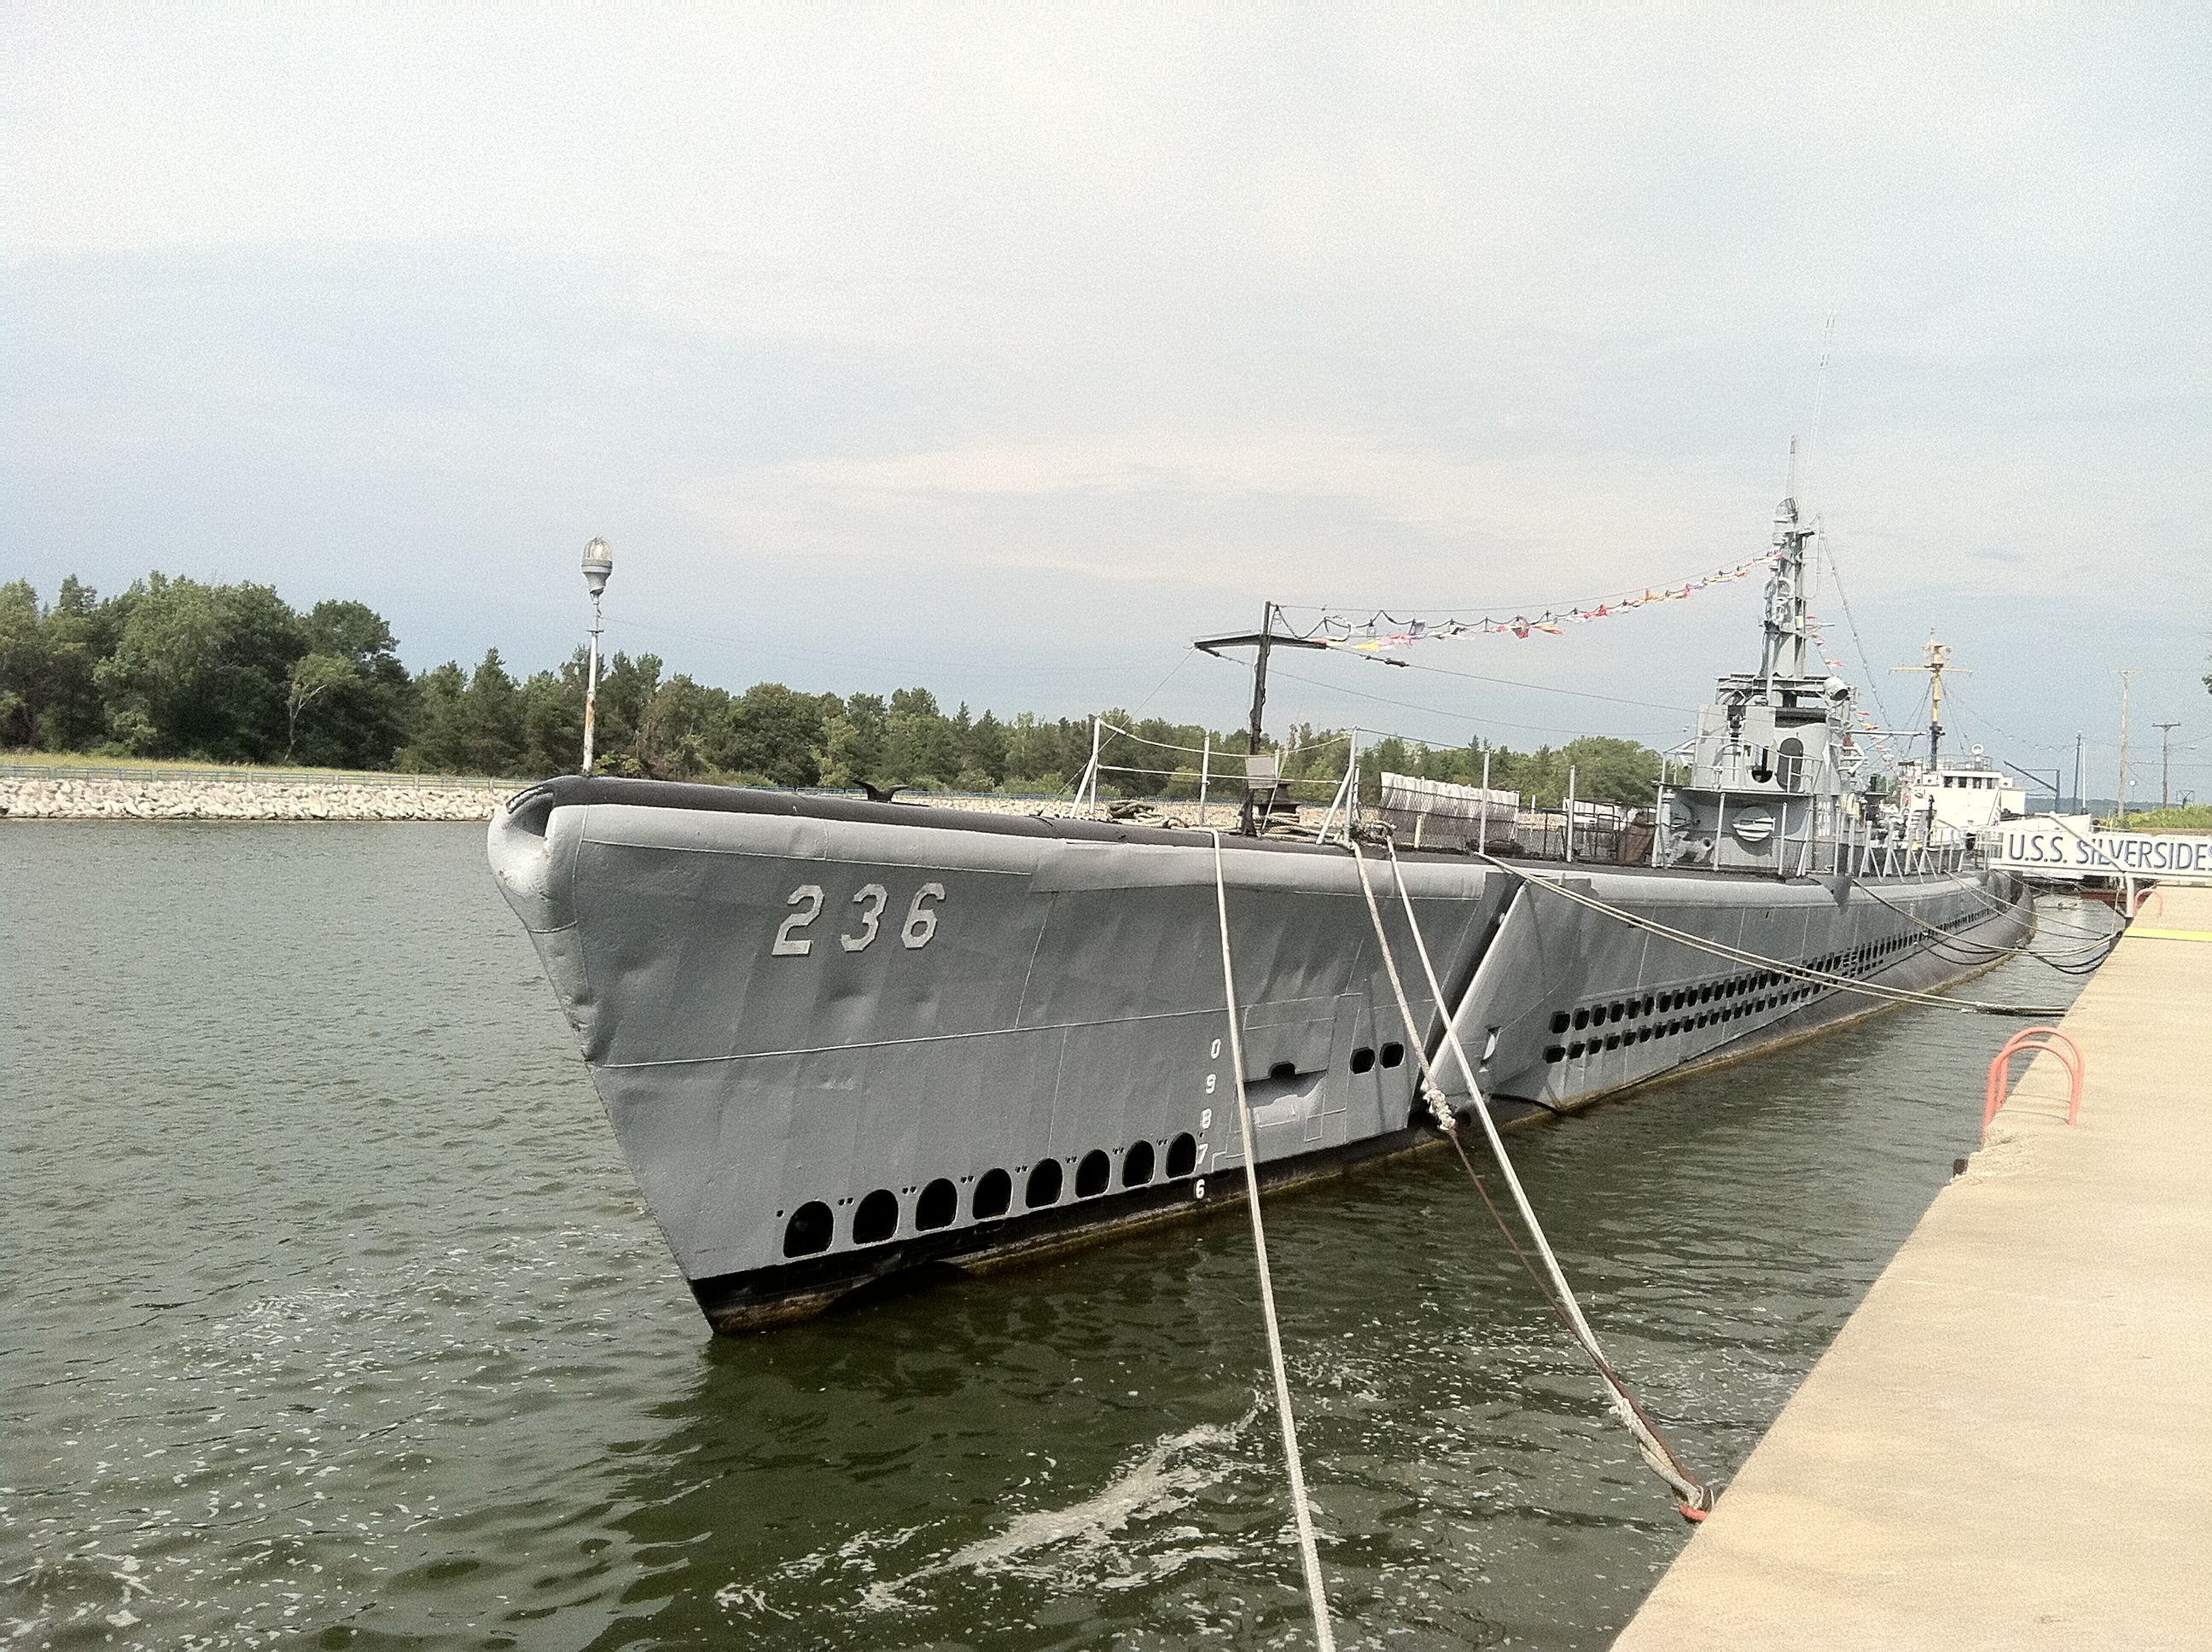 Uss Silversides Muskegon Michigan Why Do Cats Purr Cats That Dont Shed Cat In Heat